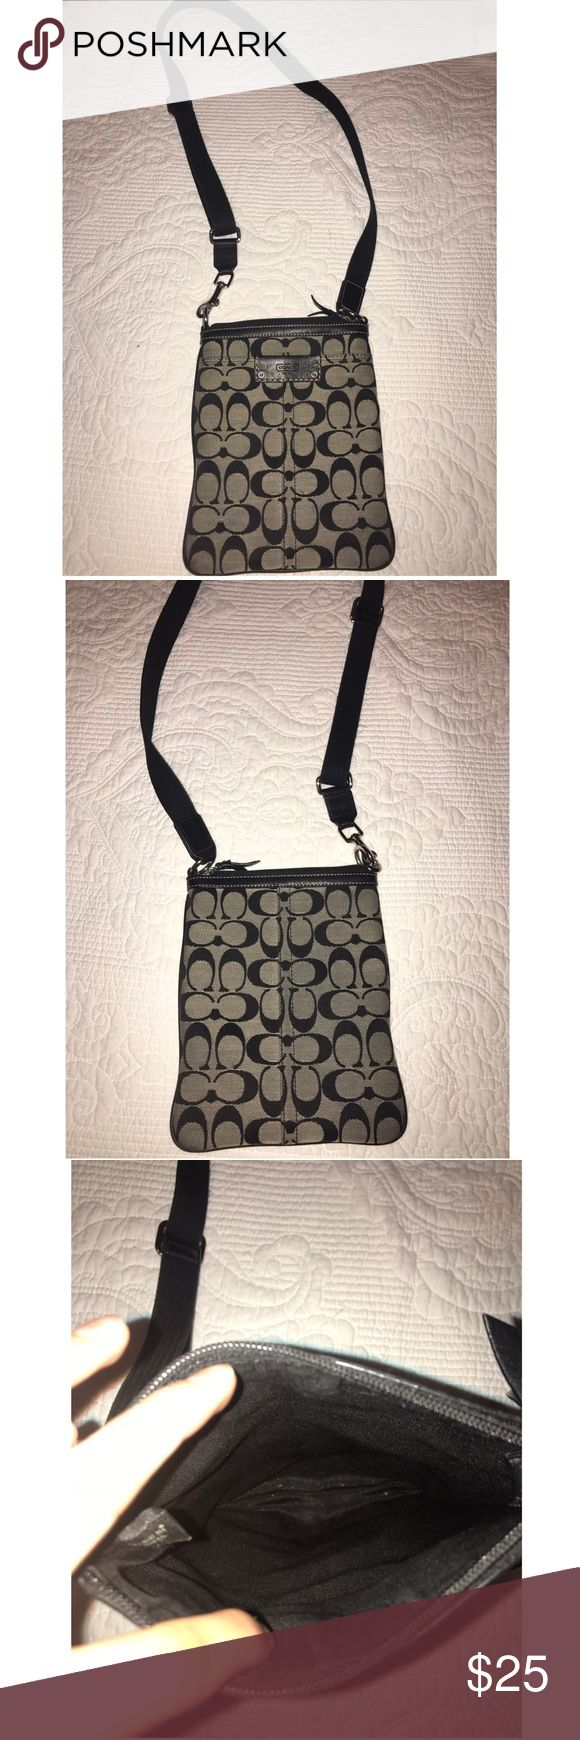 Coach Crossbody Used many many times! It's been shown love but is still in good condition! No rips or stains. It's a thin cross body so it won't hold too much but it's perfect for traveling! Coach Bags Crossbody Bags